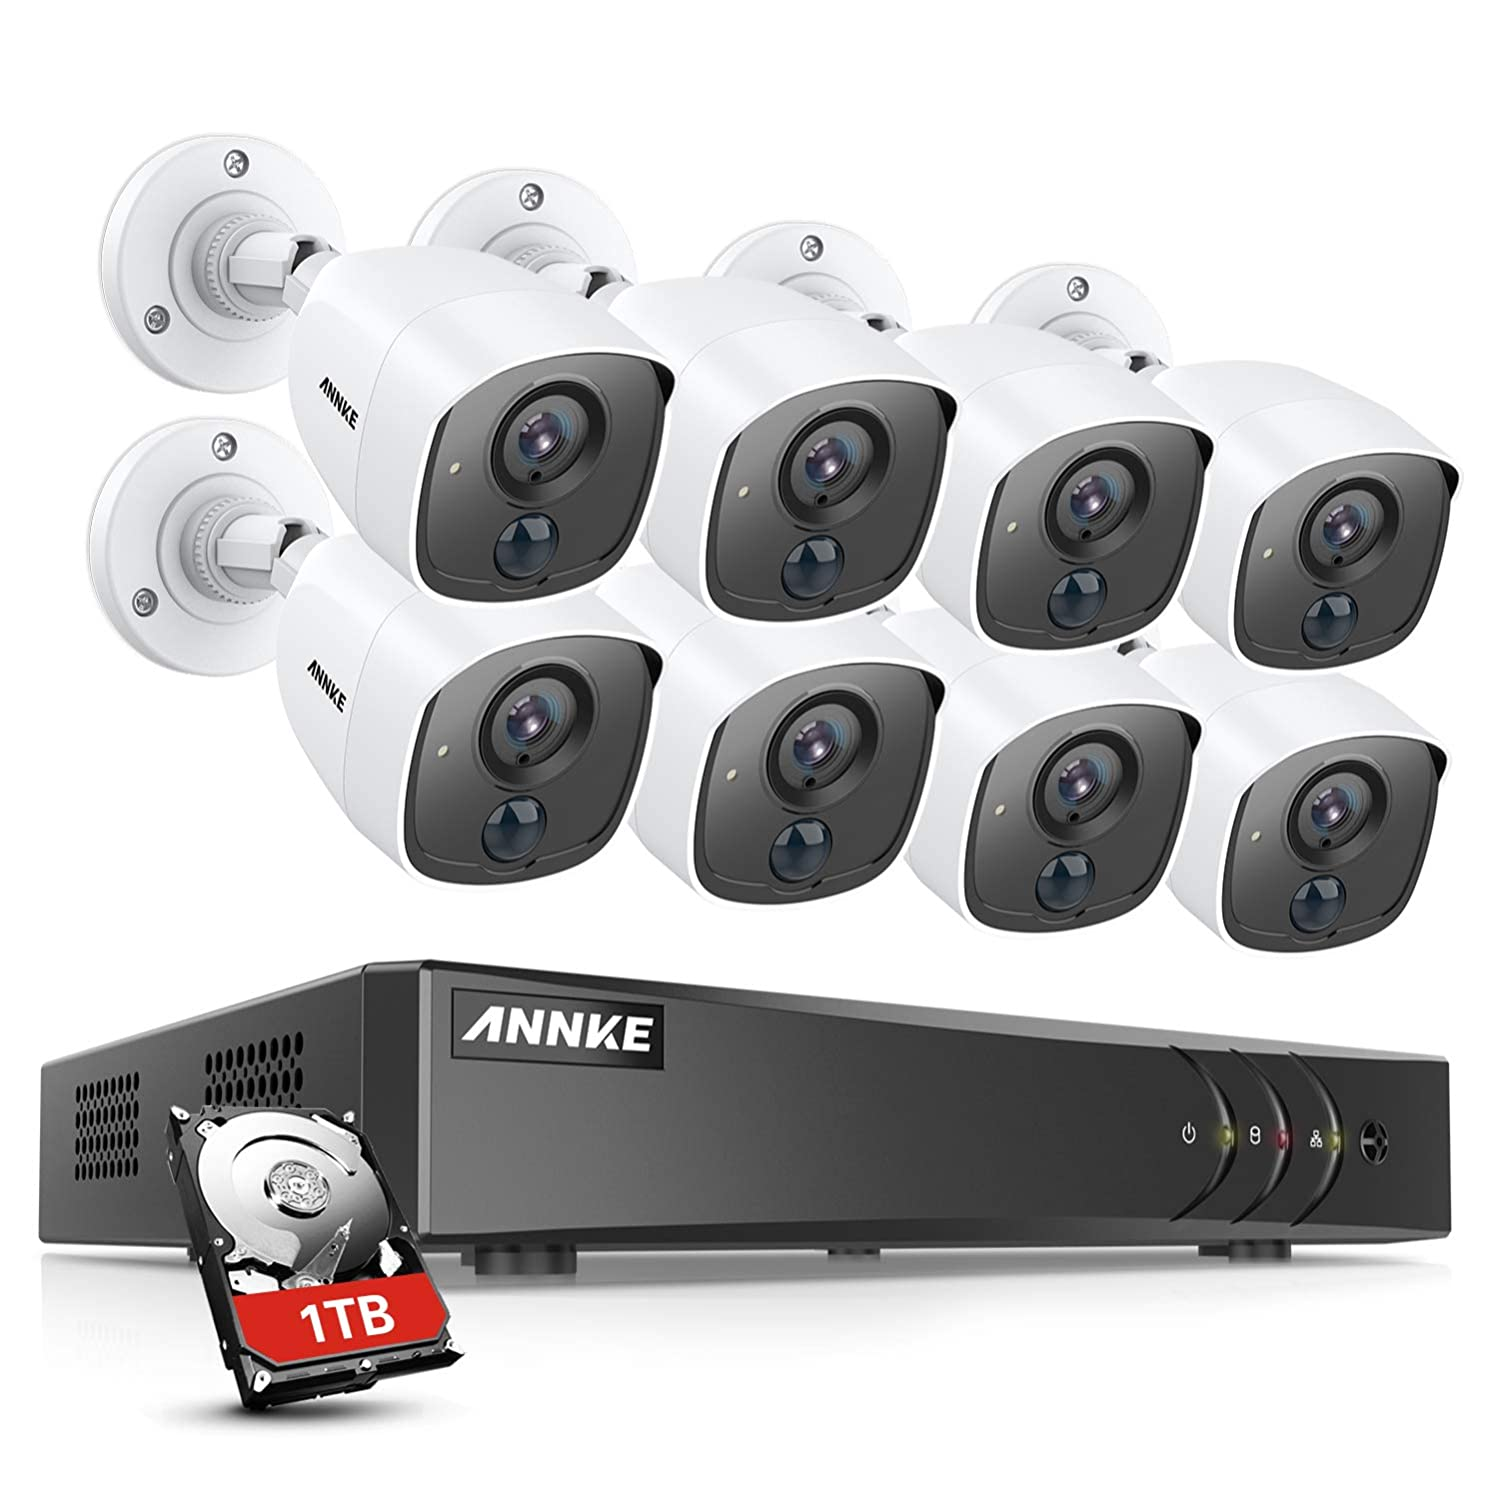 ANNKE Surveillance Security Camera System 8 Channel 5-in-1 H.265 3MP DVR and 8 1080P HD Weatherproof CCTV Cameras, PIR Detection, Flashing Light Alarm, Email Alert with Snapshots, 1TB Hard Drive